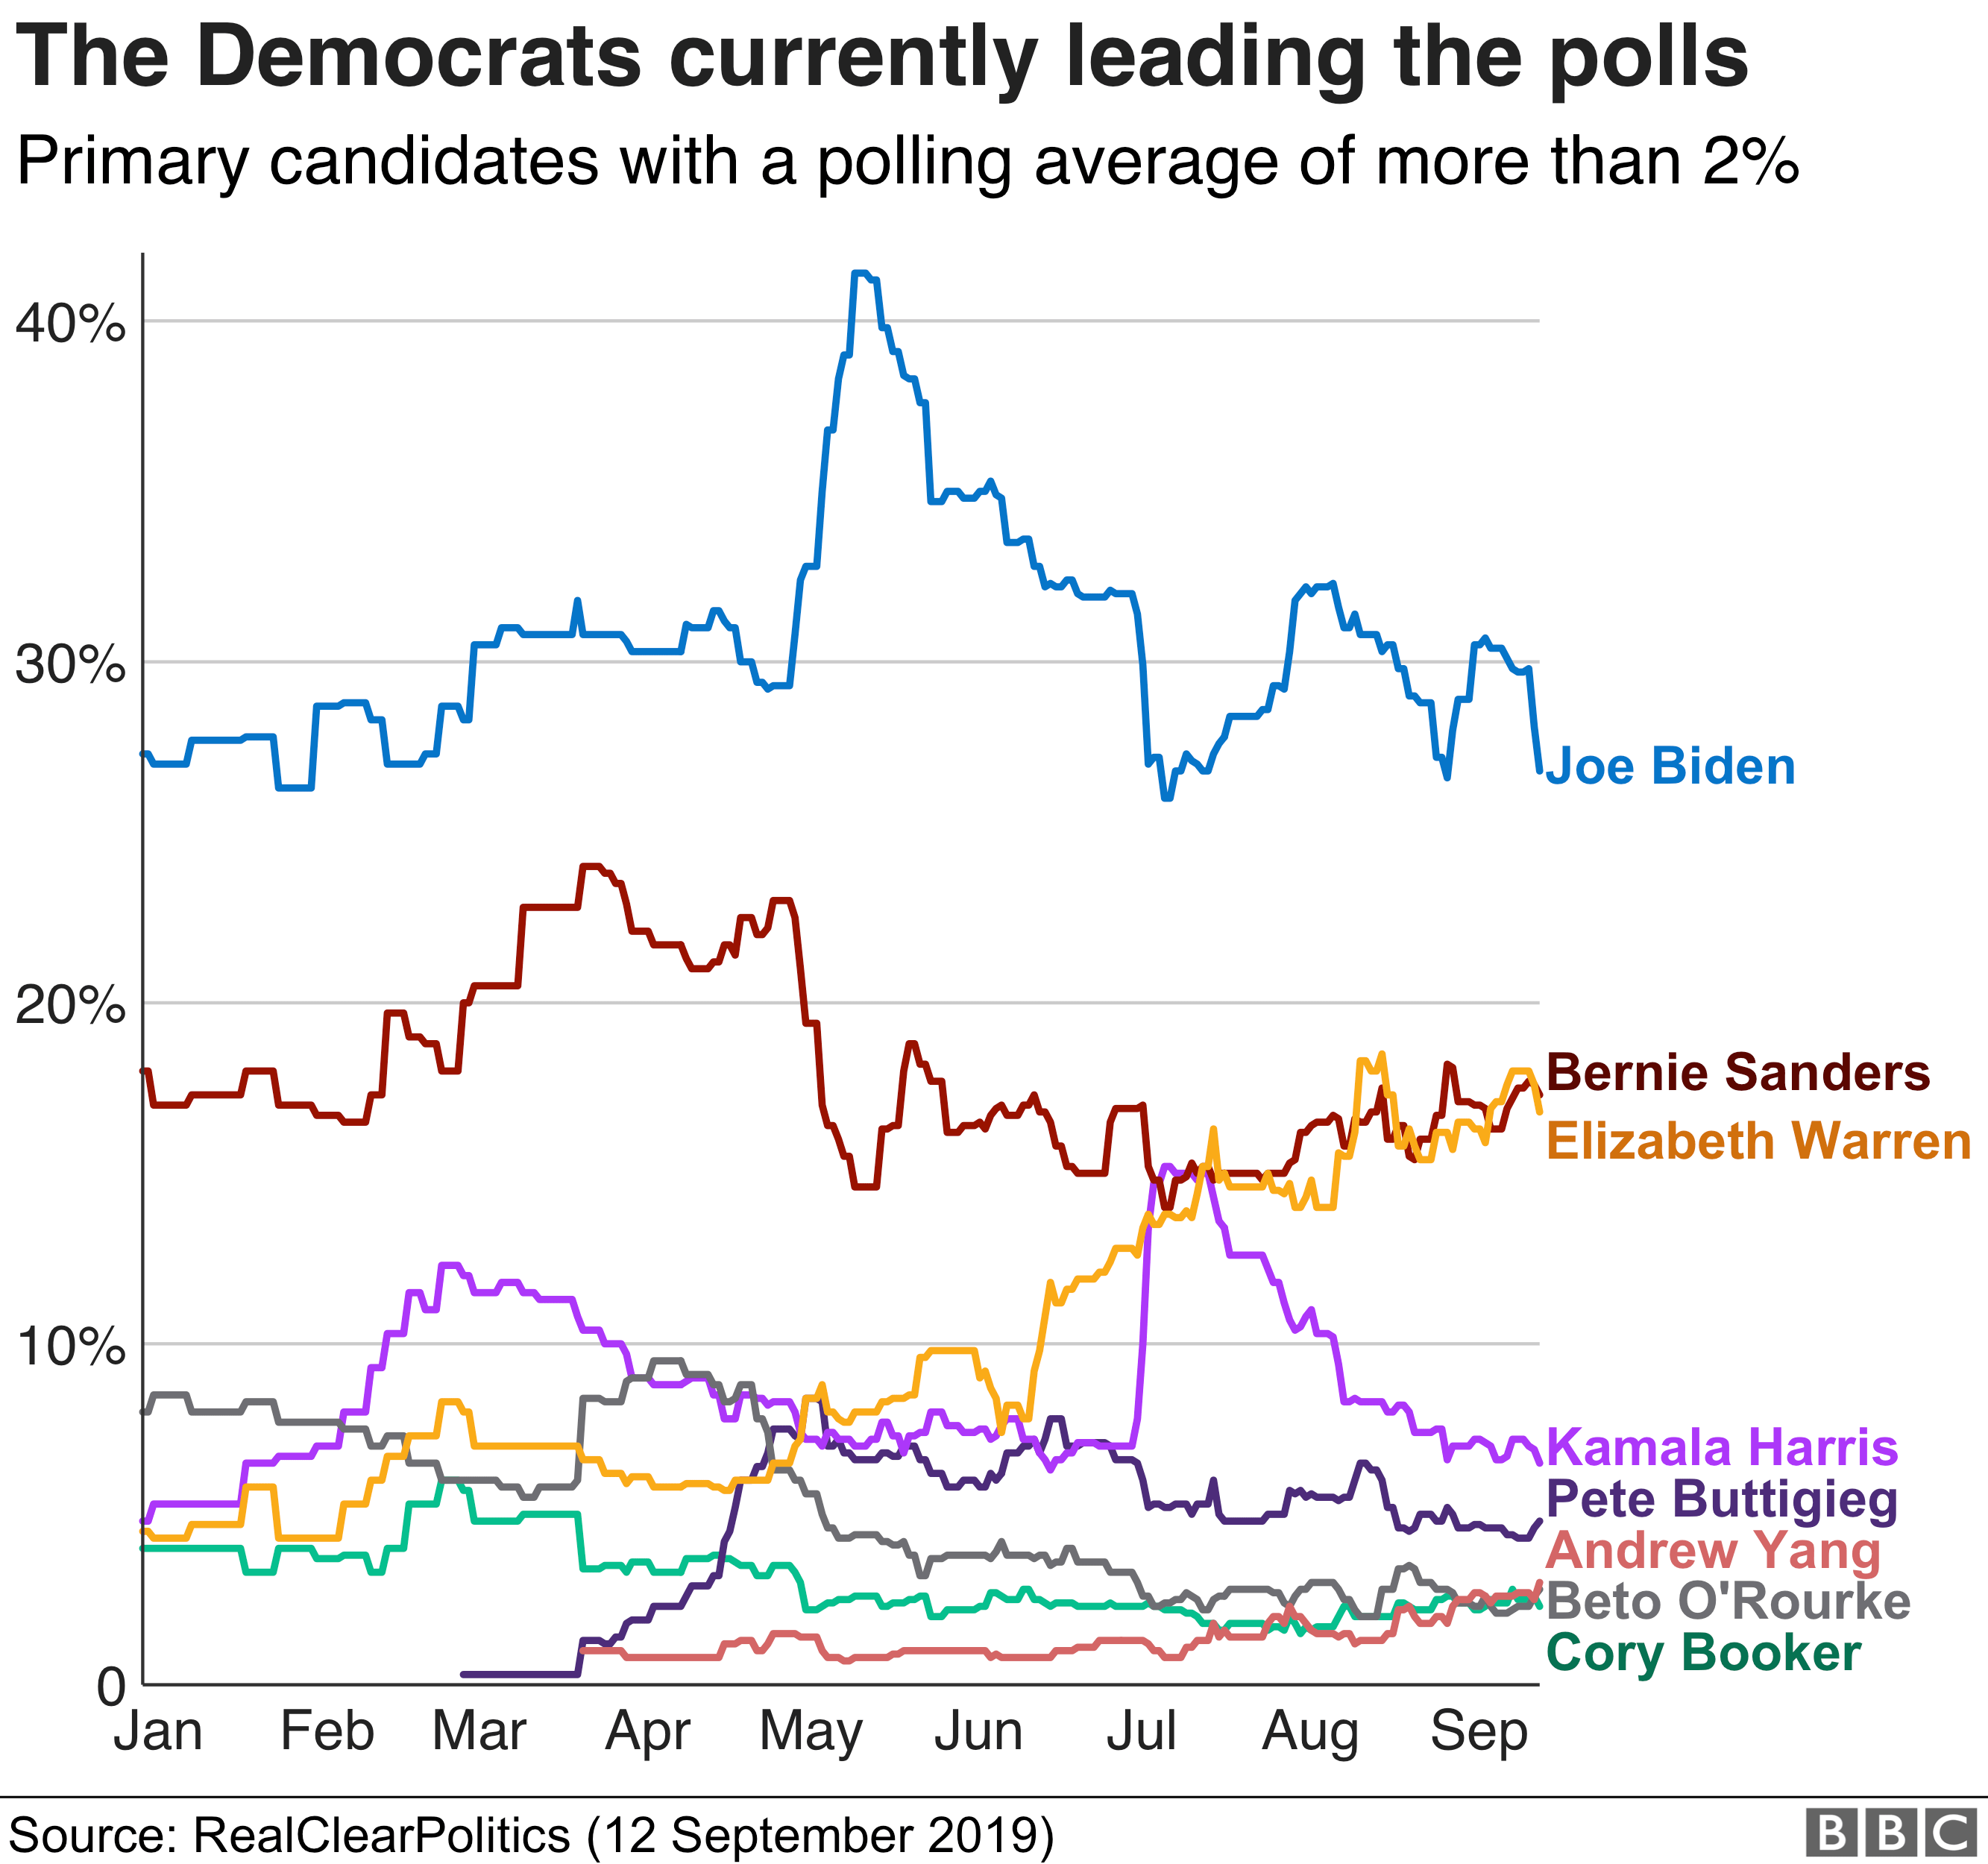 Graphic showing Democratic polling numbers with Biden in the lead